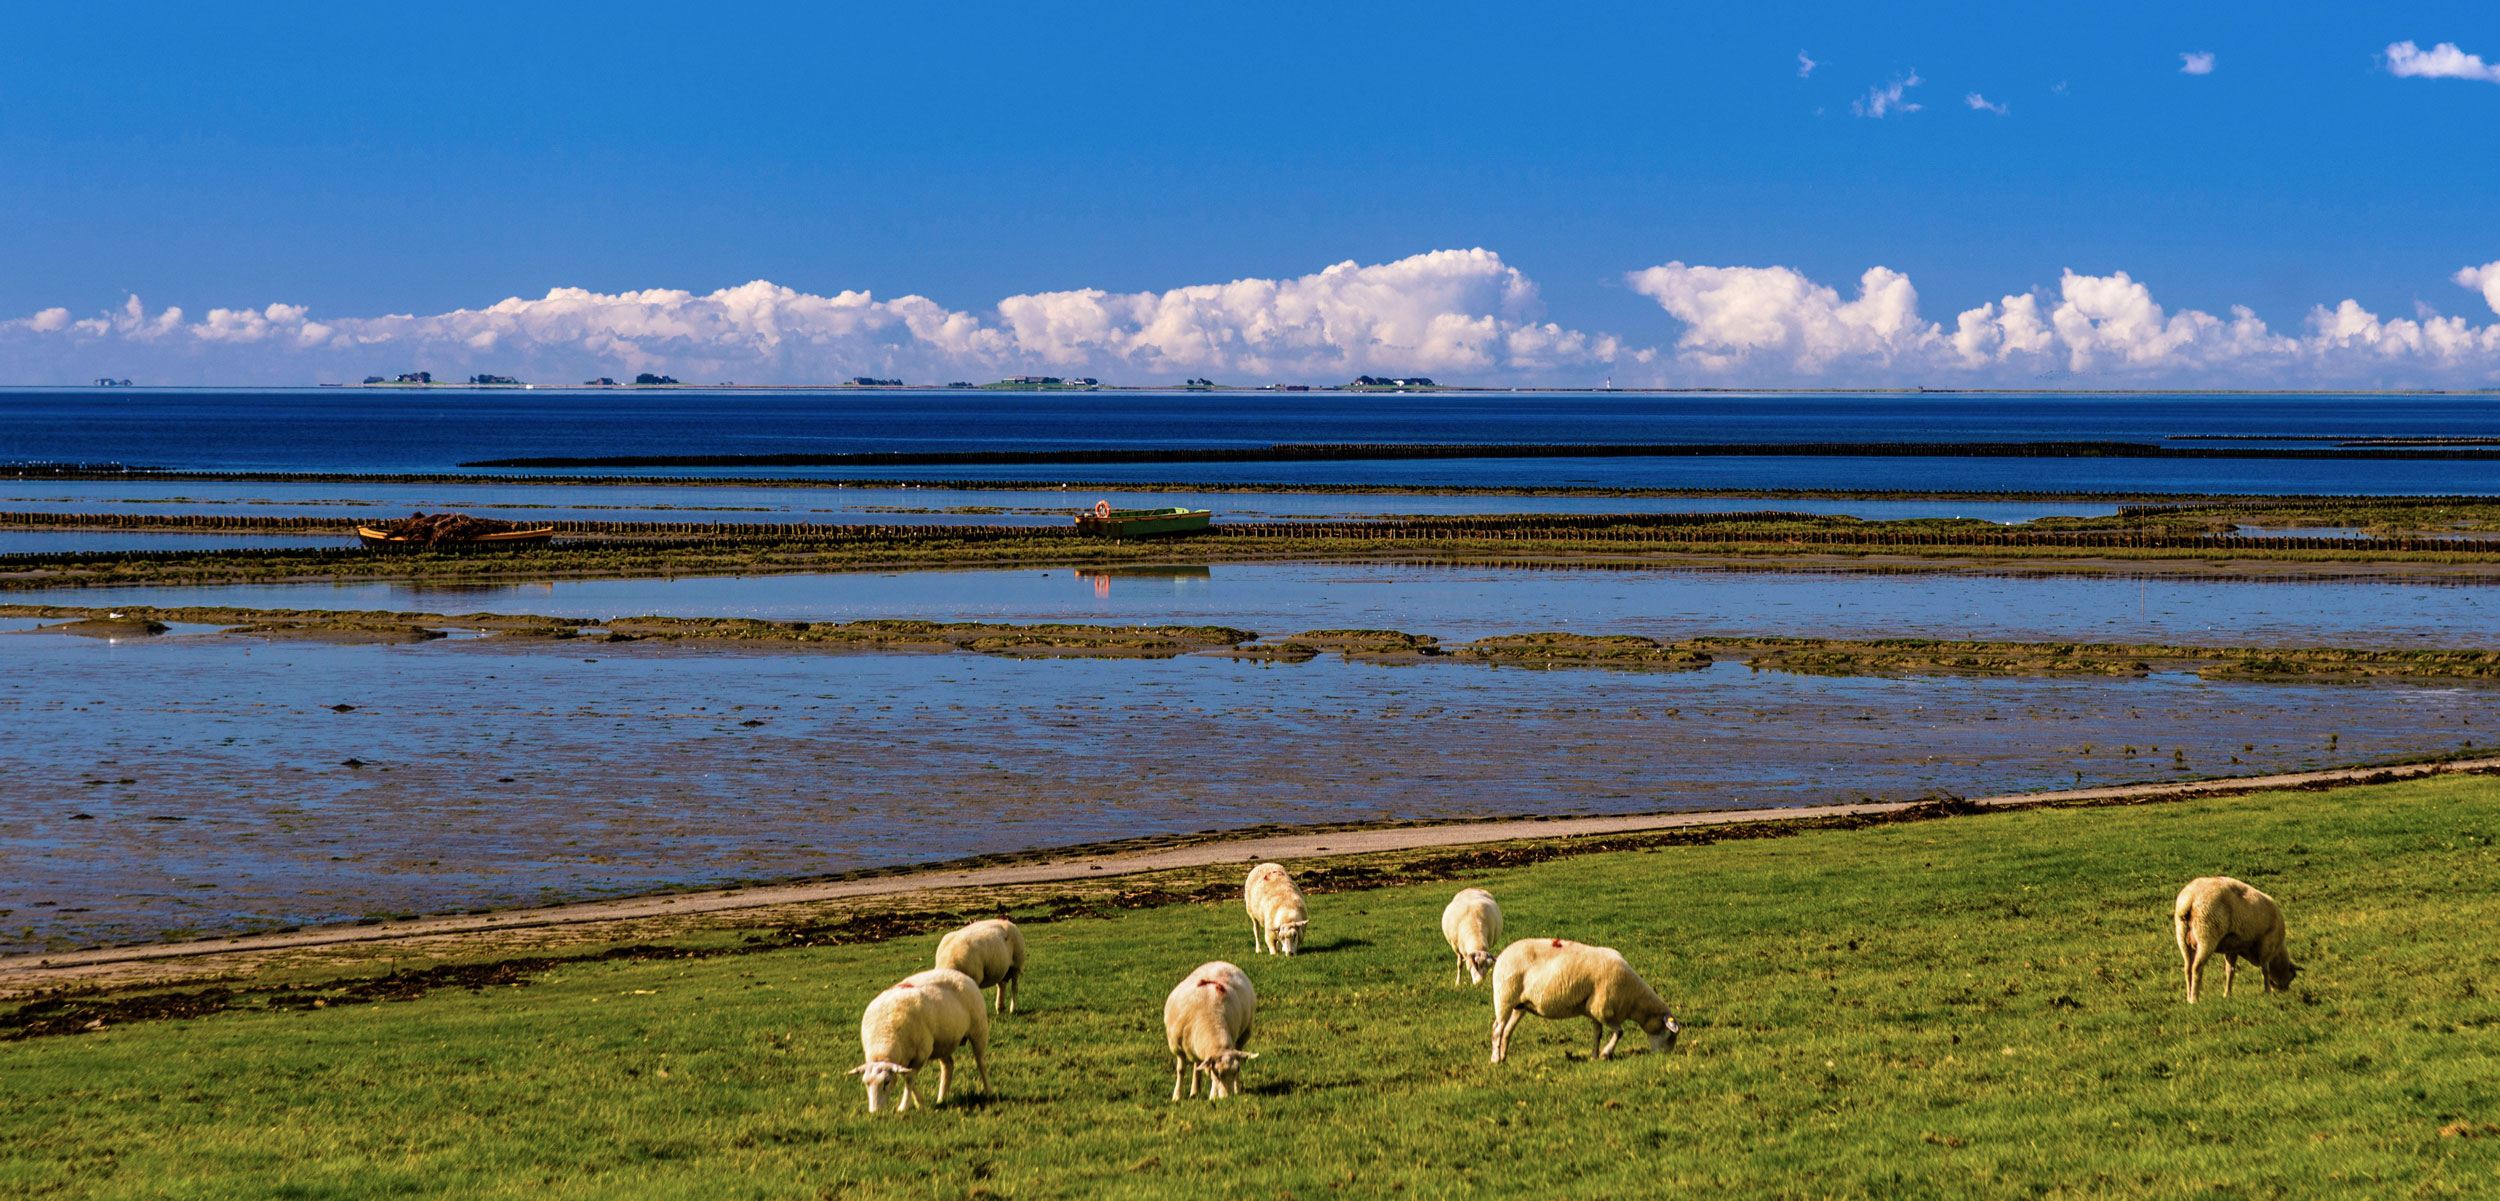 sheep grazing on the Wadden Sea